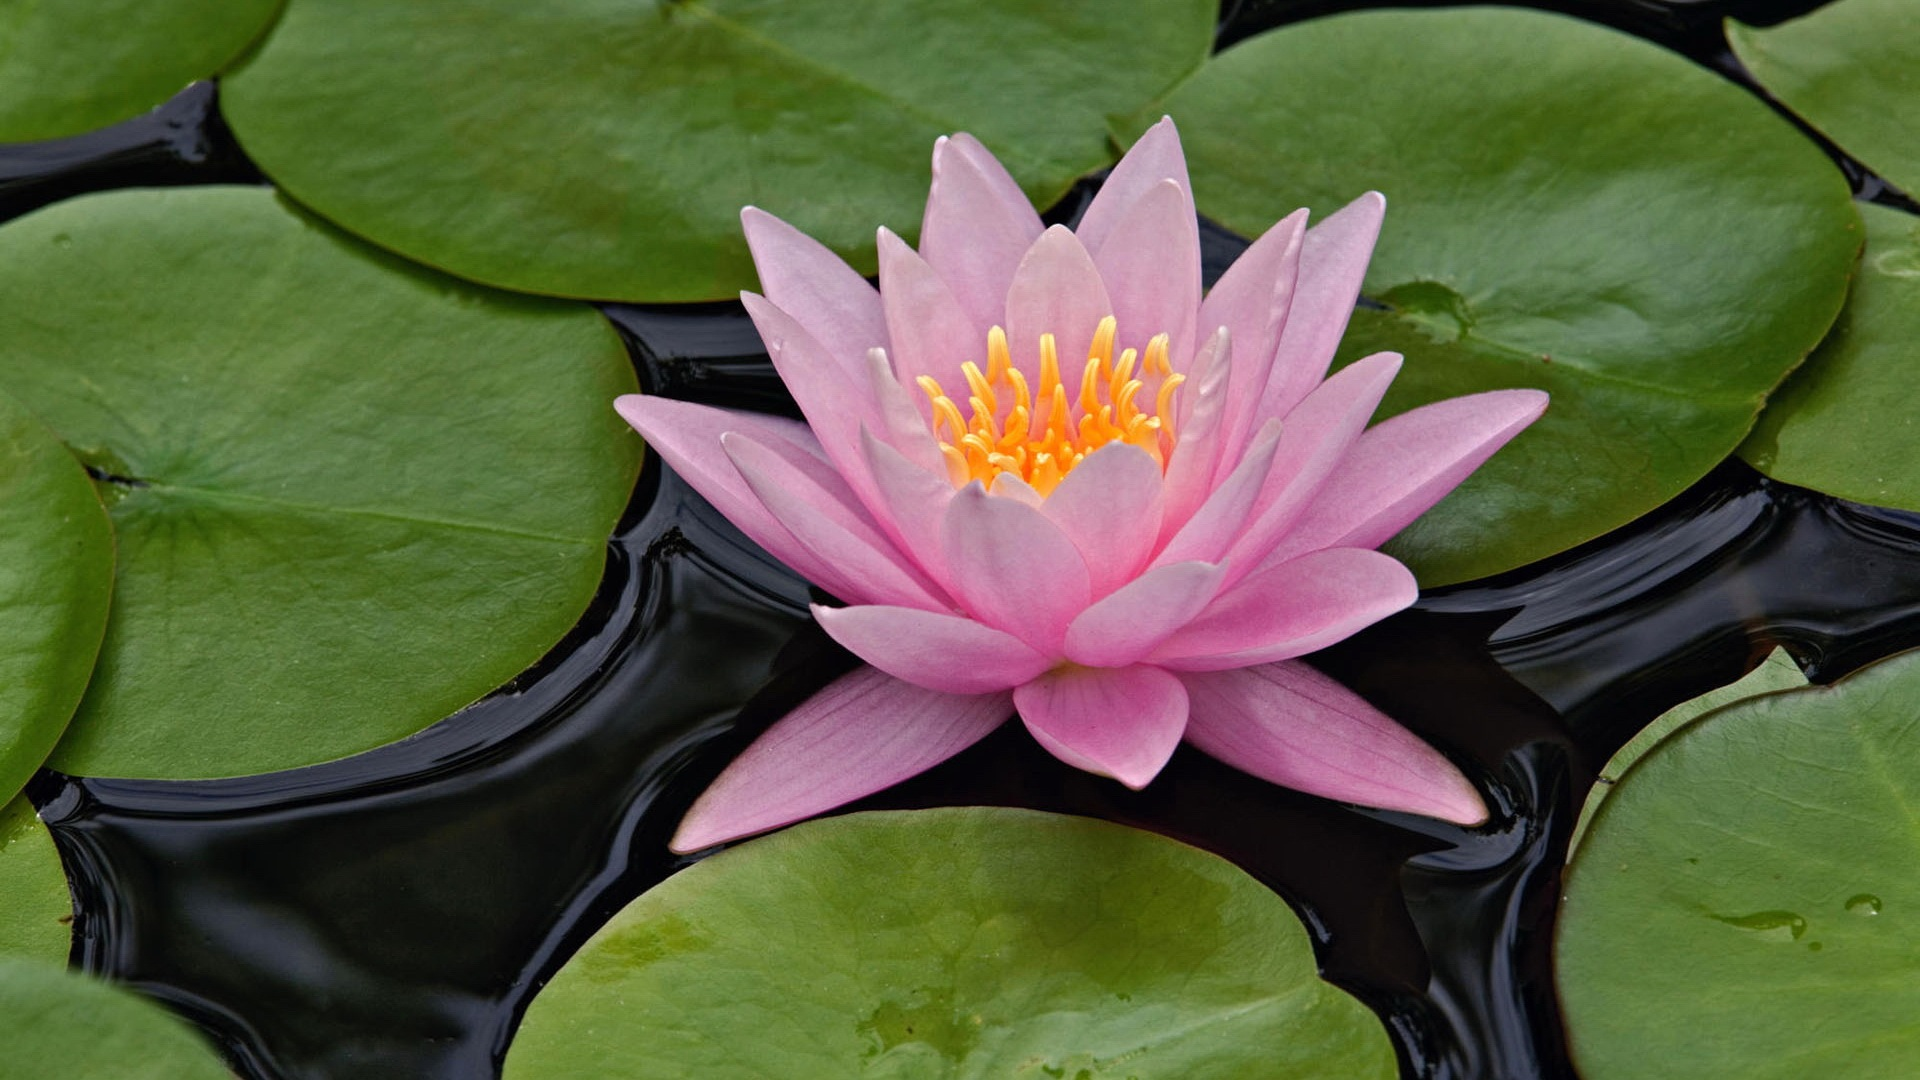 Lotus Flower HD Wallpaper.